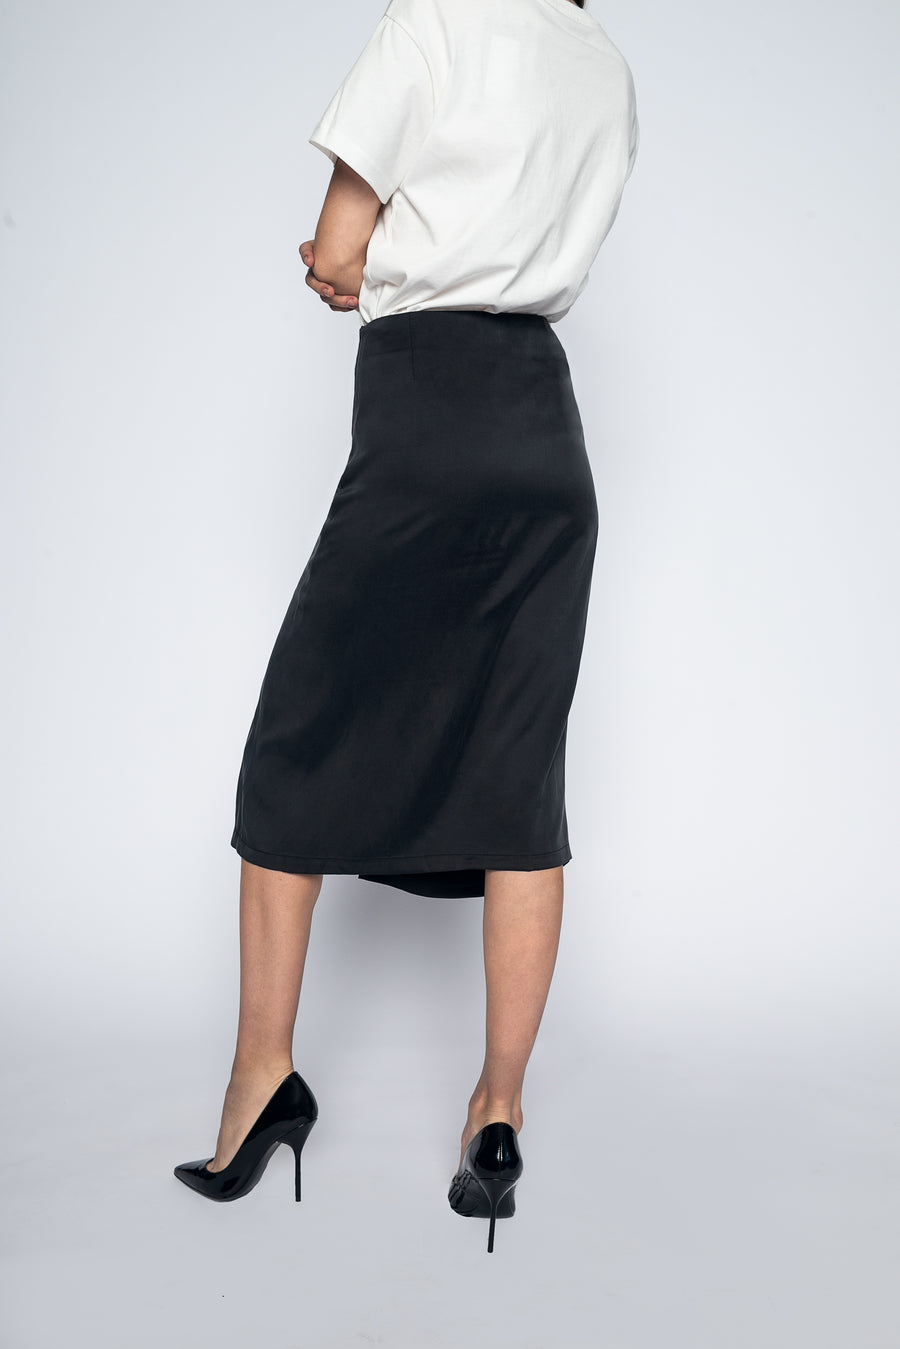 Tulip Skirt Black-Bottoms-Christina Dienst